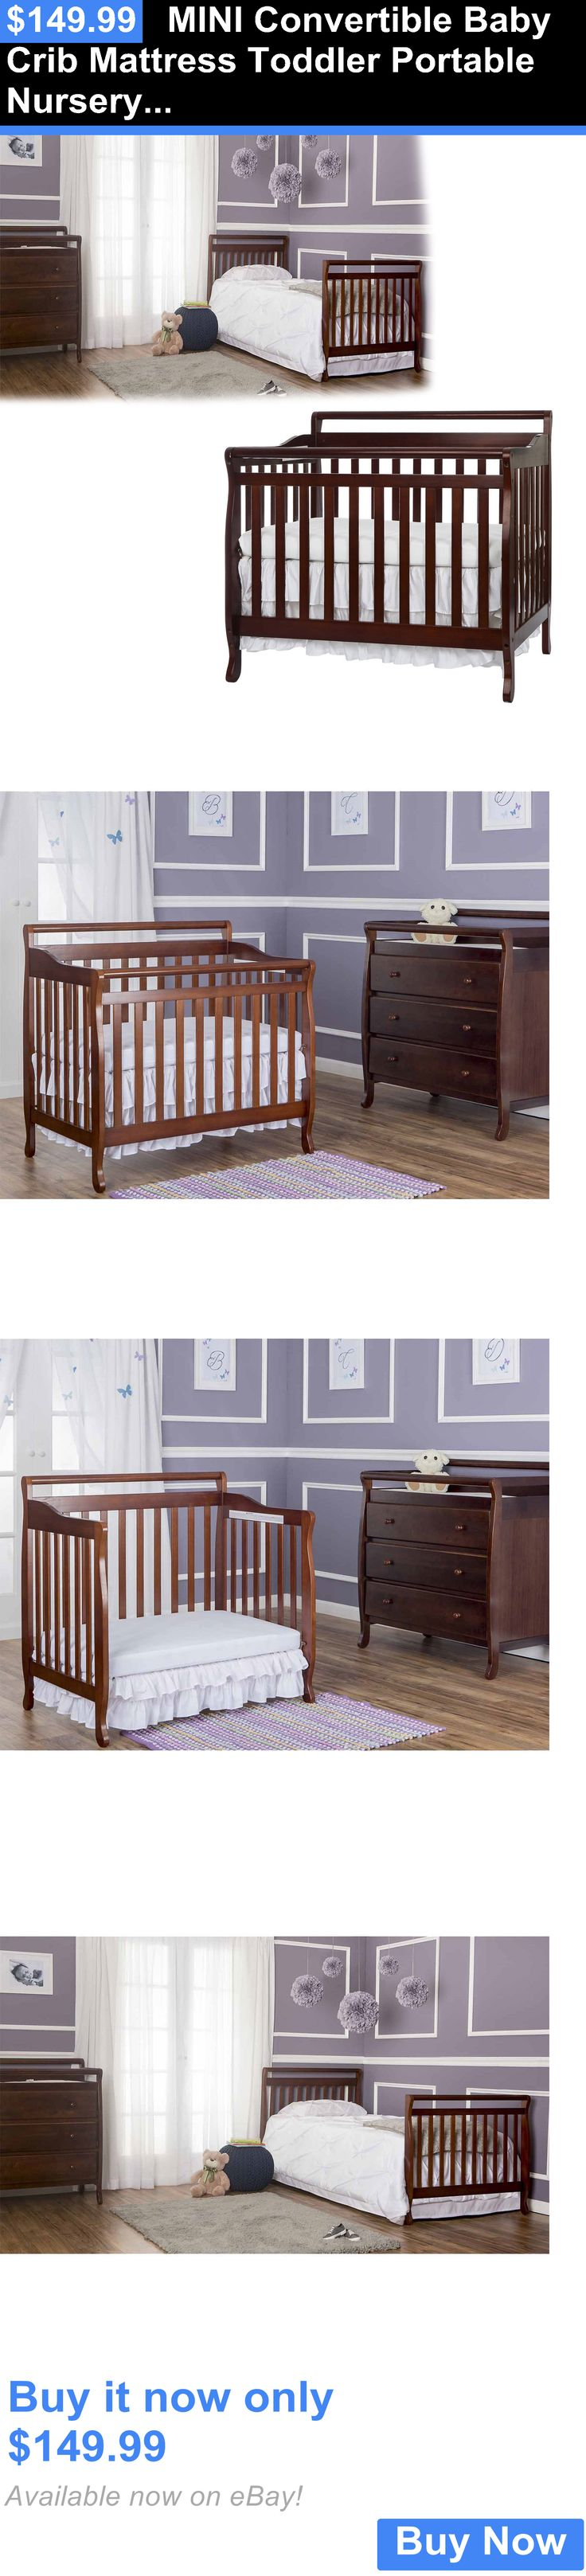 Crib for sale sheffield - Baby Nursery Mini Convertible Baby Crib Mattress Toddler Portable Nursery Bed Changer Side Buy It